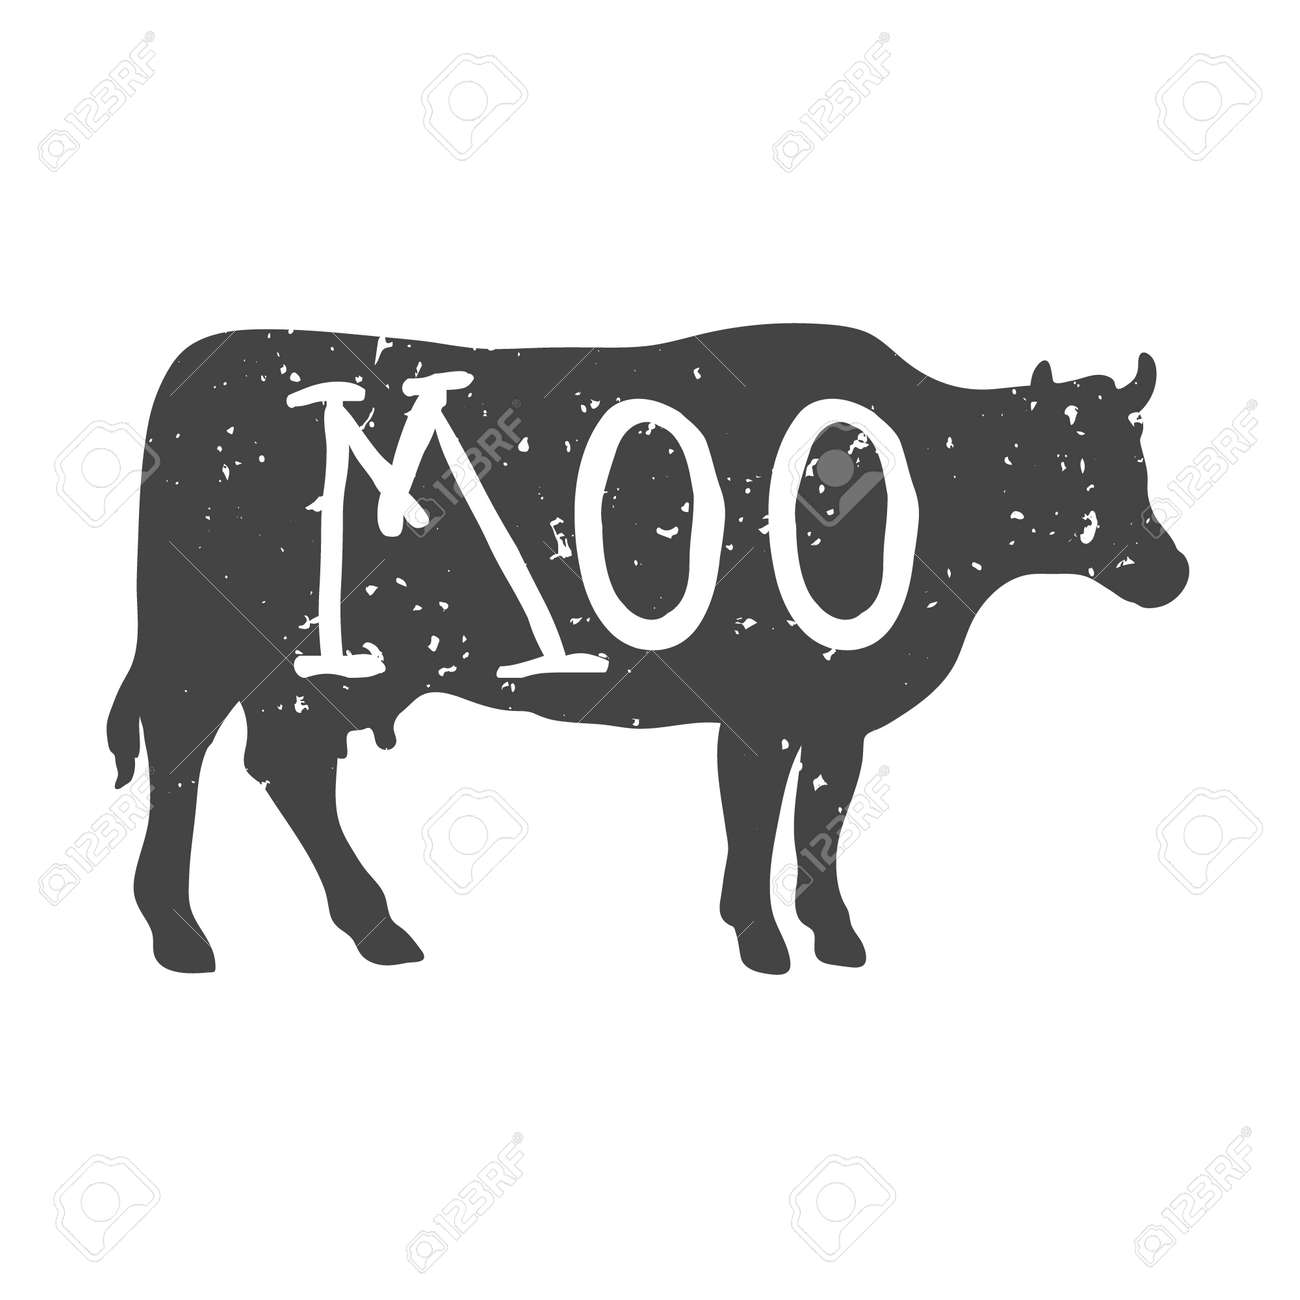 Cow Silhouette with Moo Text. Vector - 133200447